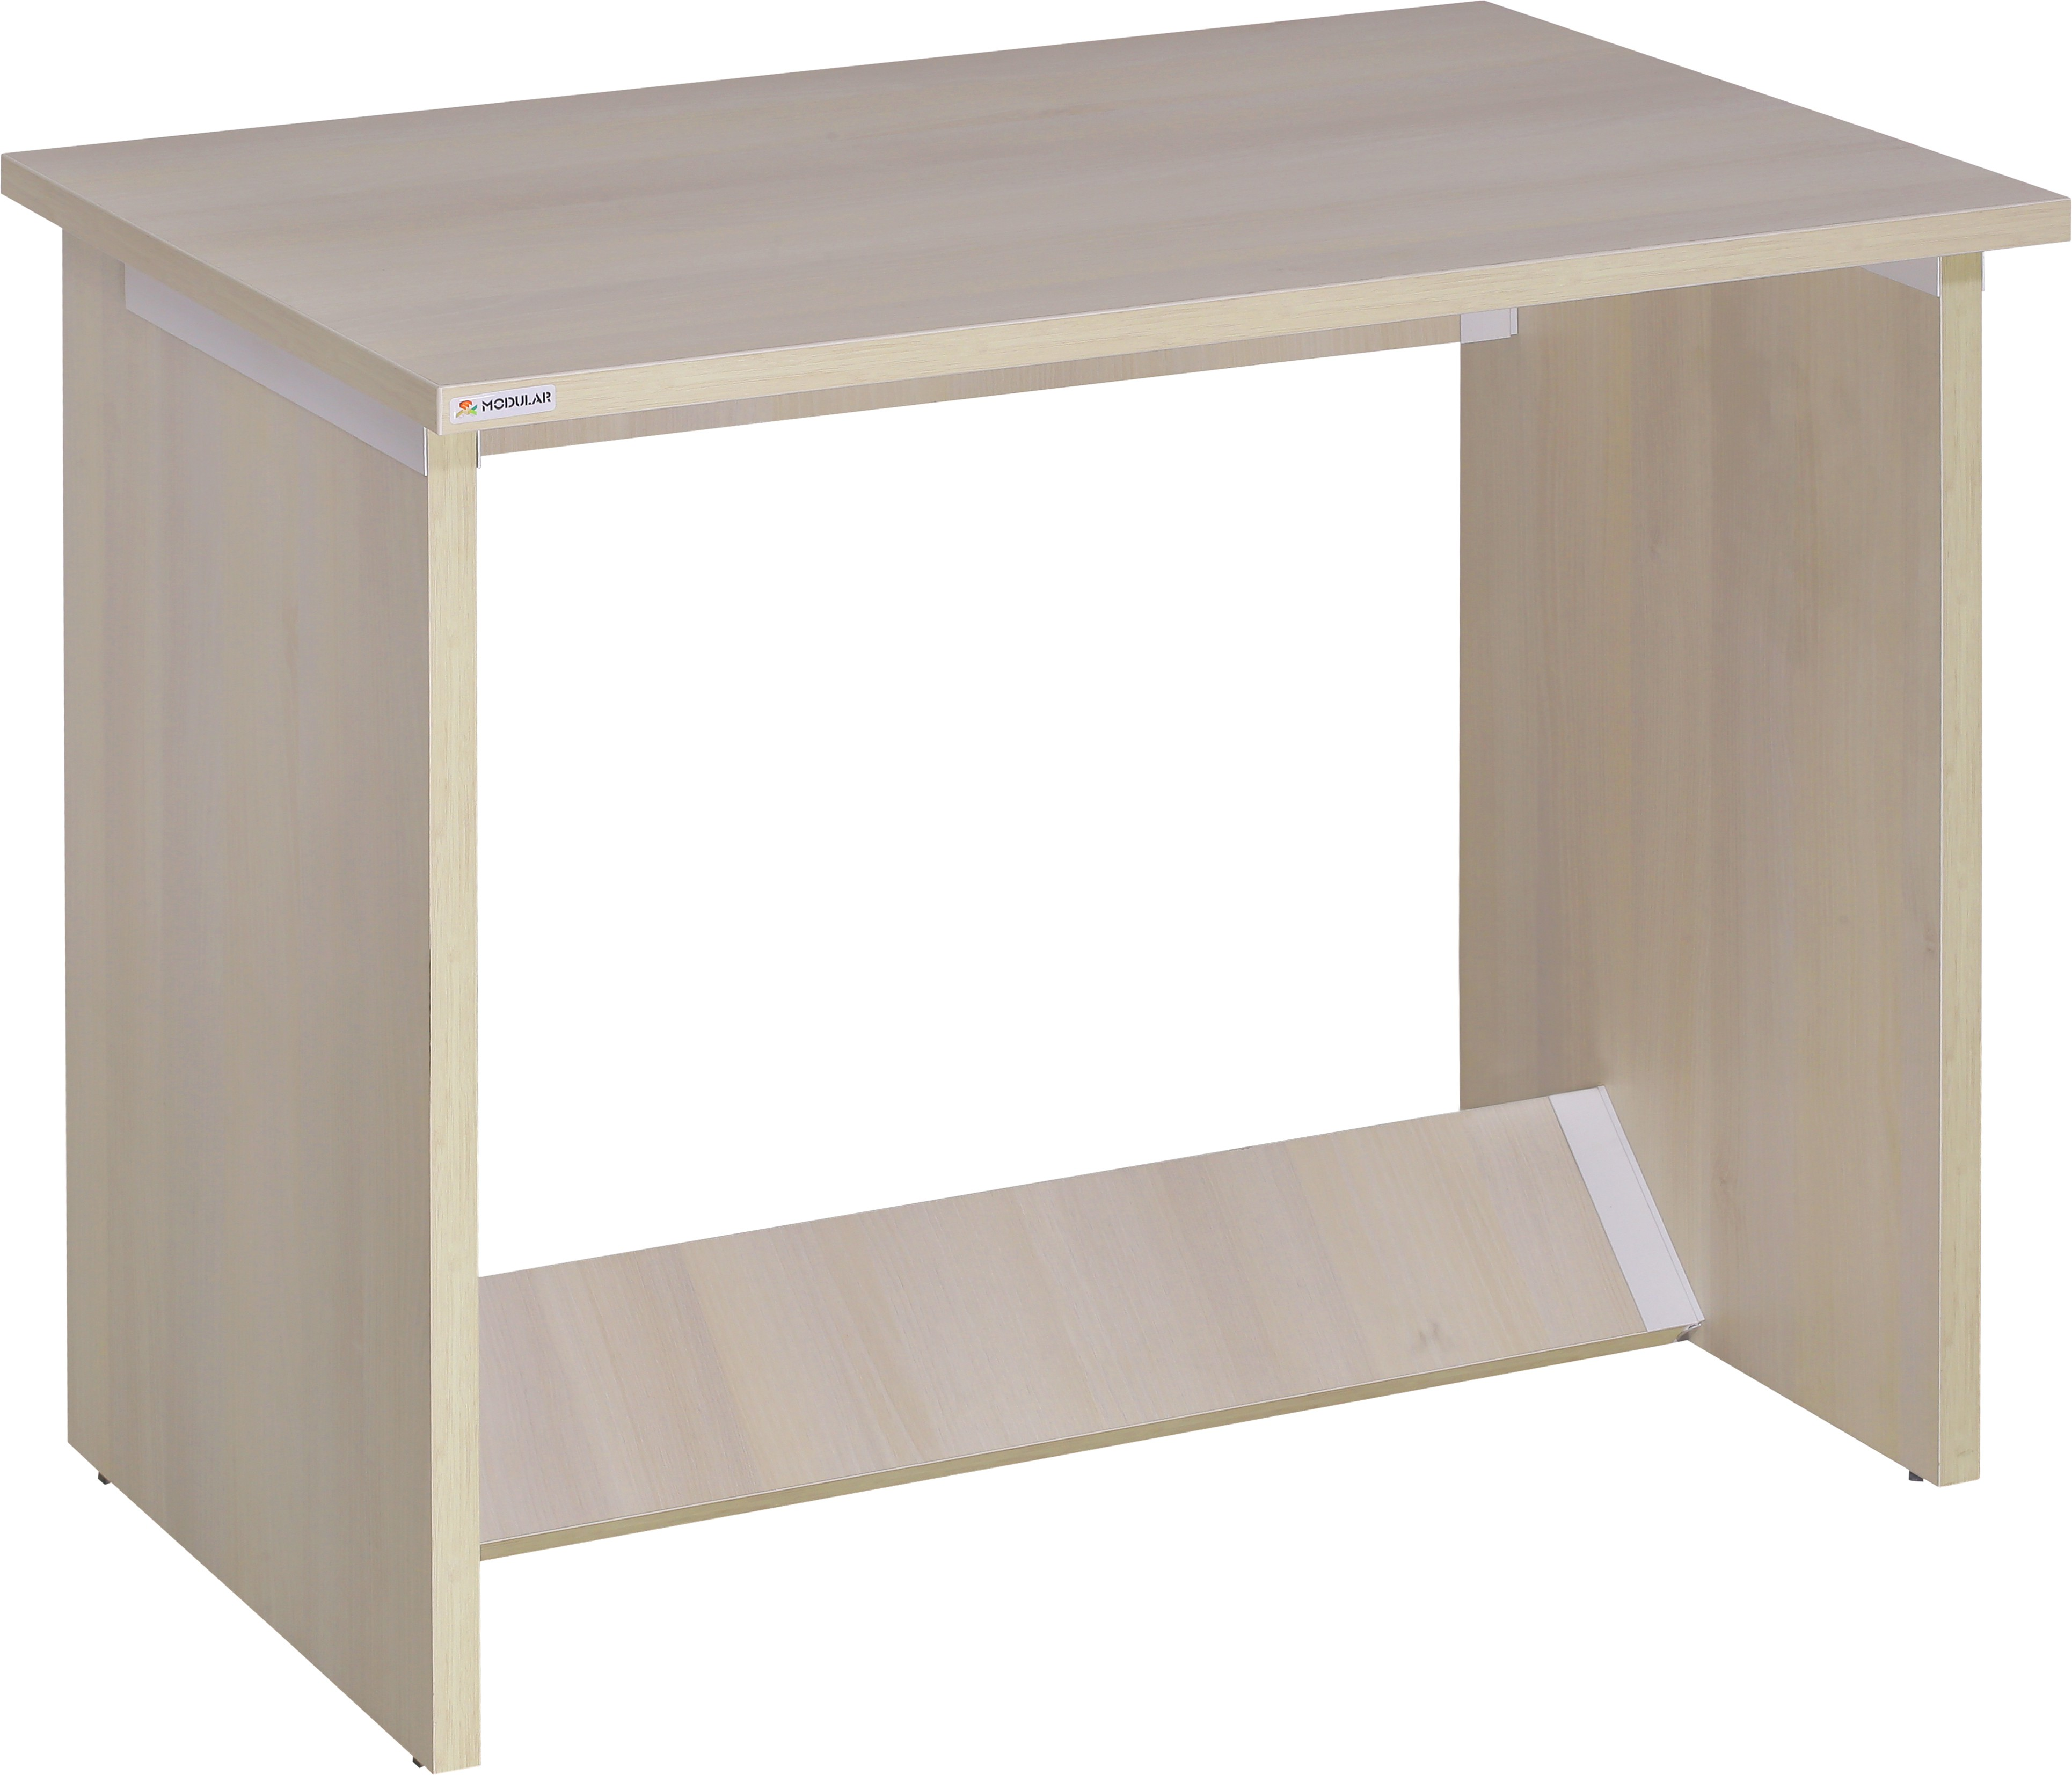 View EPL Modular Engineered Wood Workstation(Straight, Finish Color - Cream) Furniture (EPL Modular)